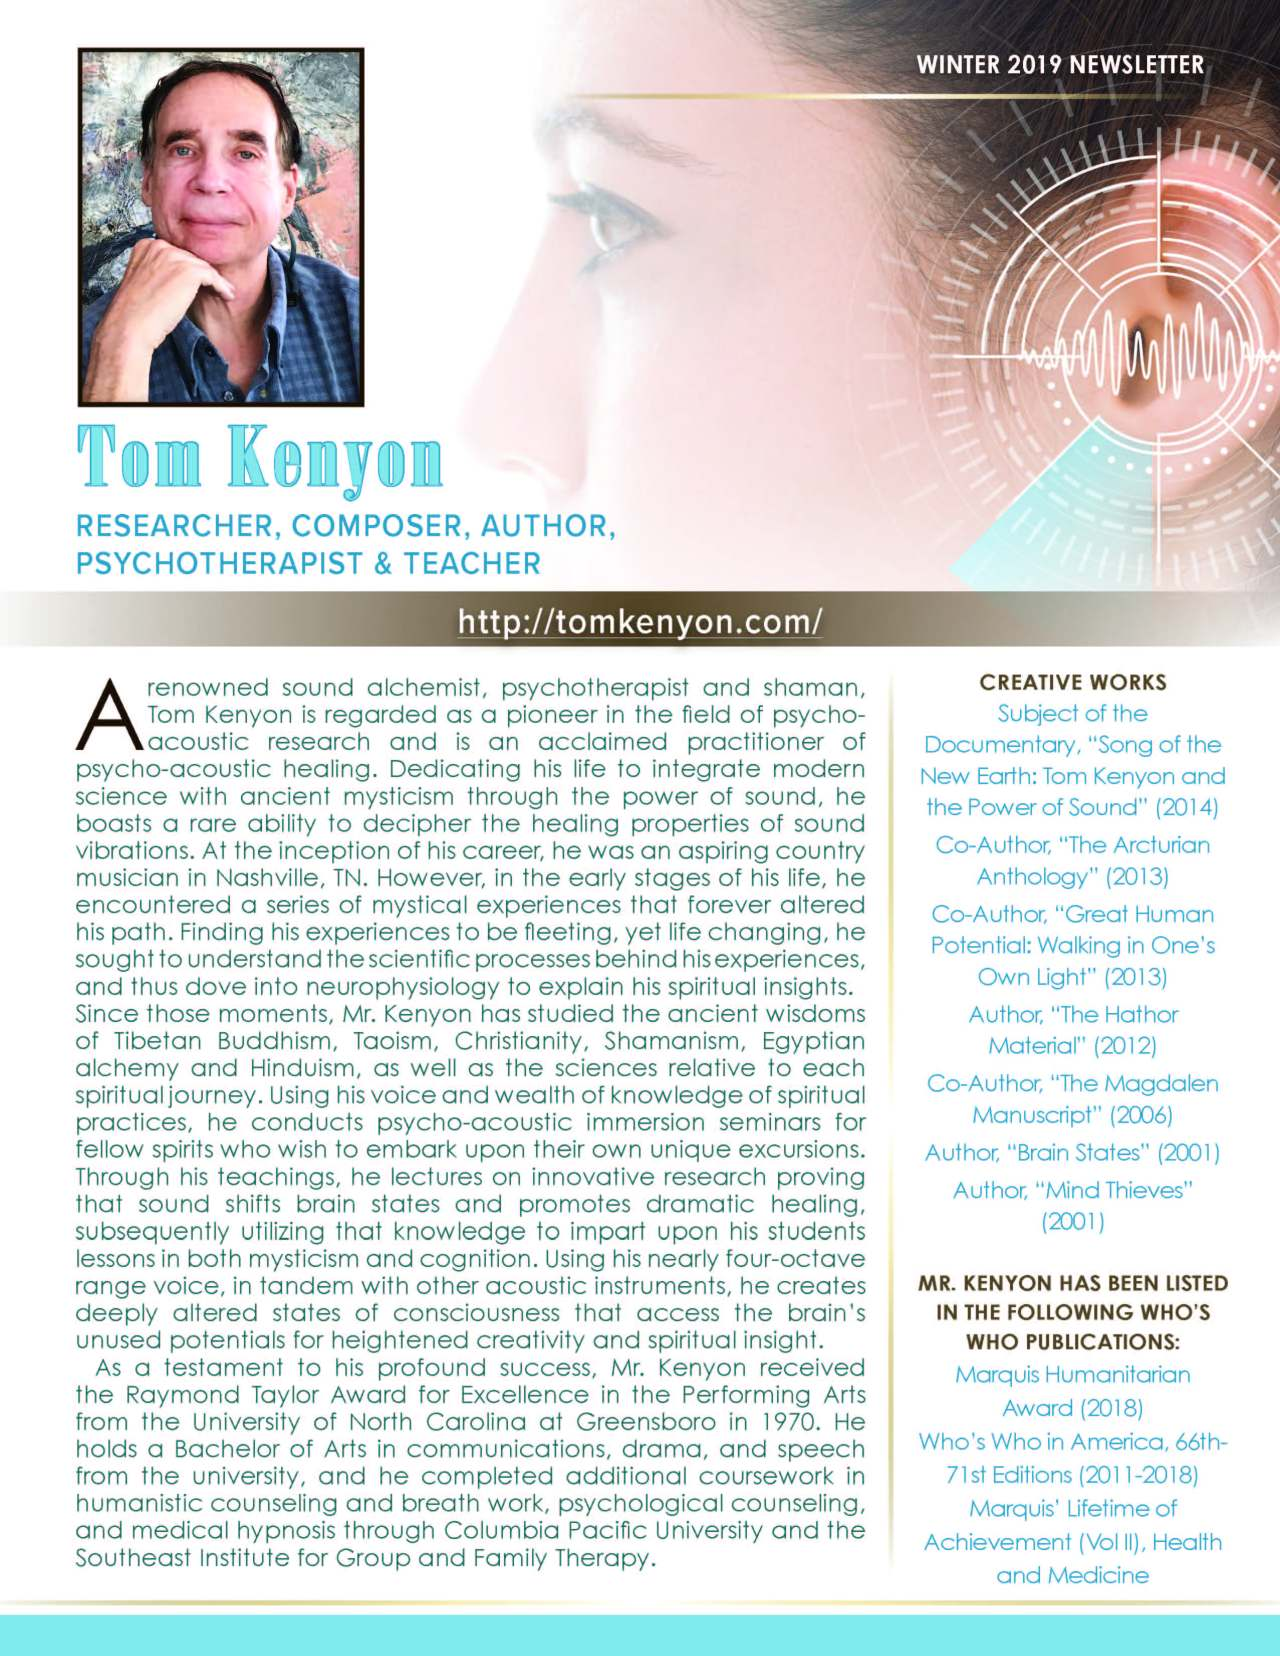 Kenyon, Tom 2131347_35850036 Newsletter REVISED.jpg